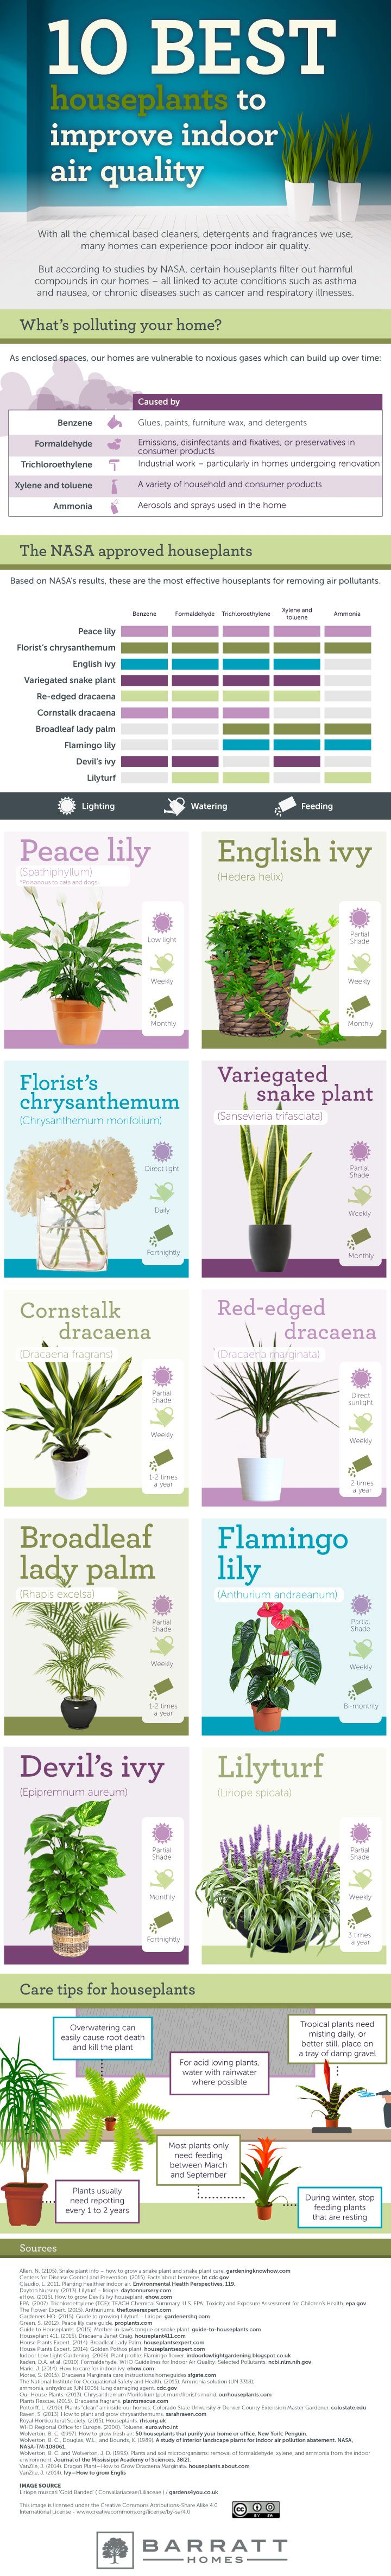 Top 10 House Plants for Clean Indoor Air | The Healthy Home Economist | The Healthy Home Economist